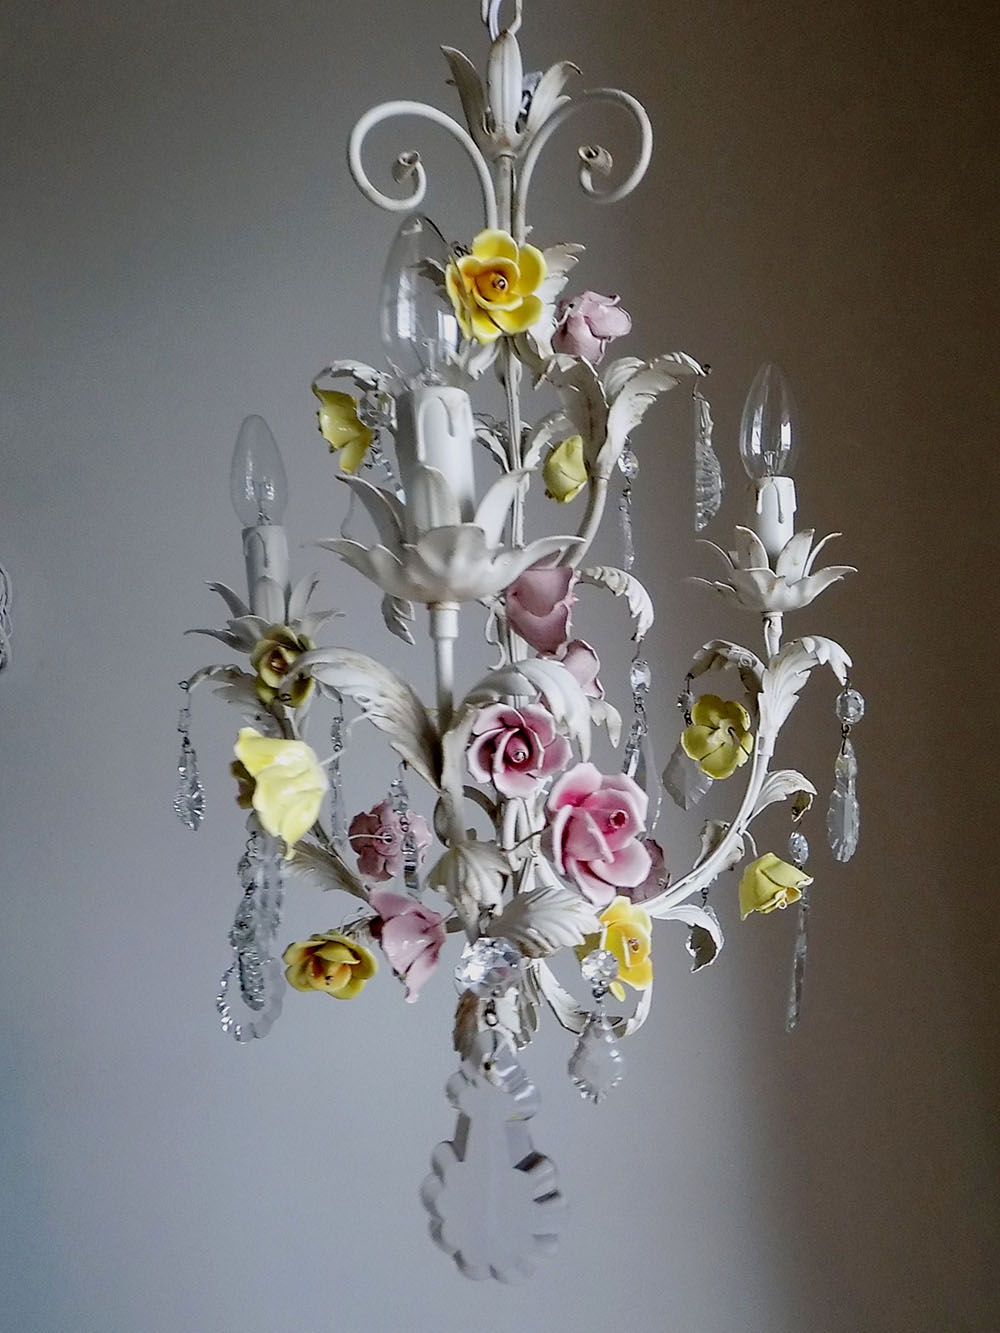 Flower Chandelier Design Sponge Design Sponge The English